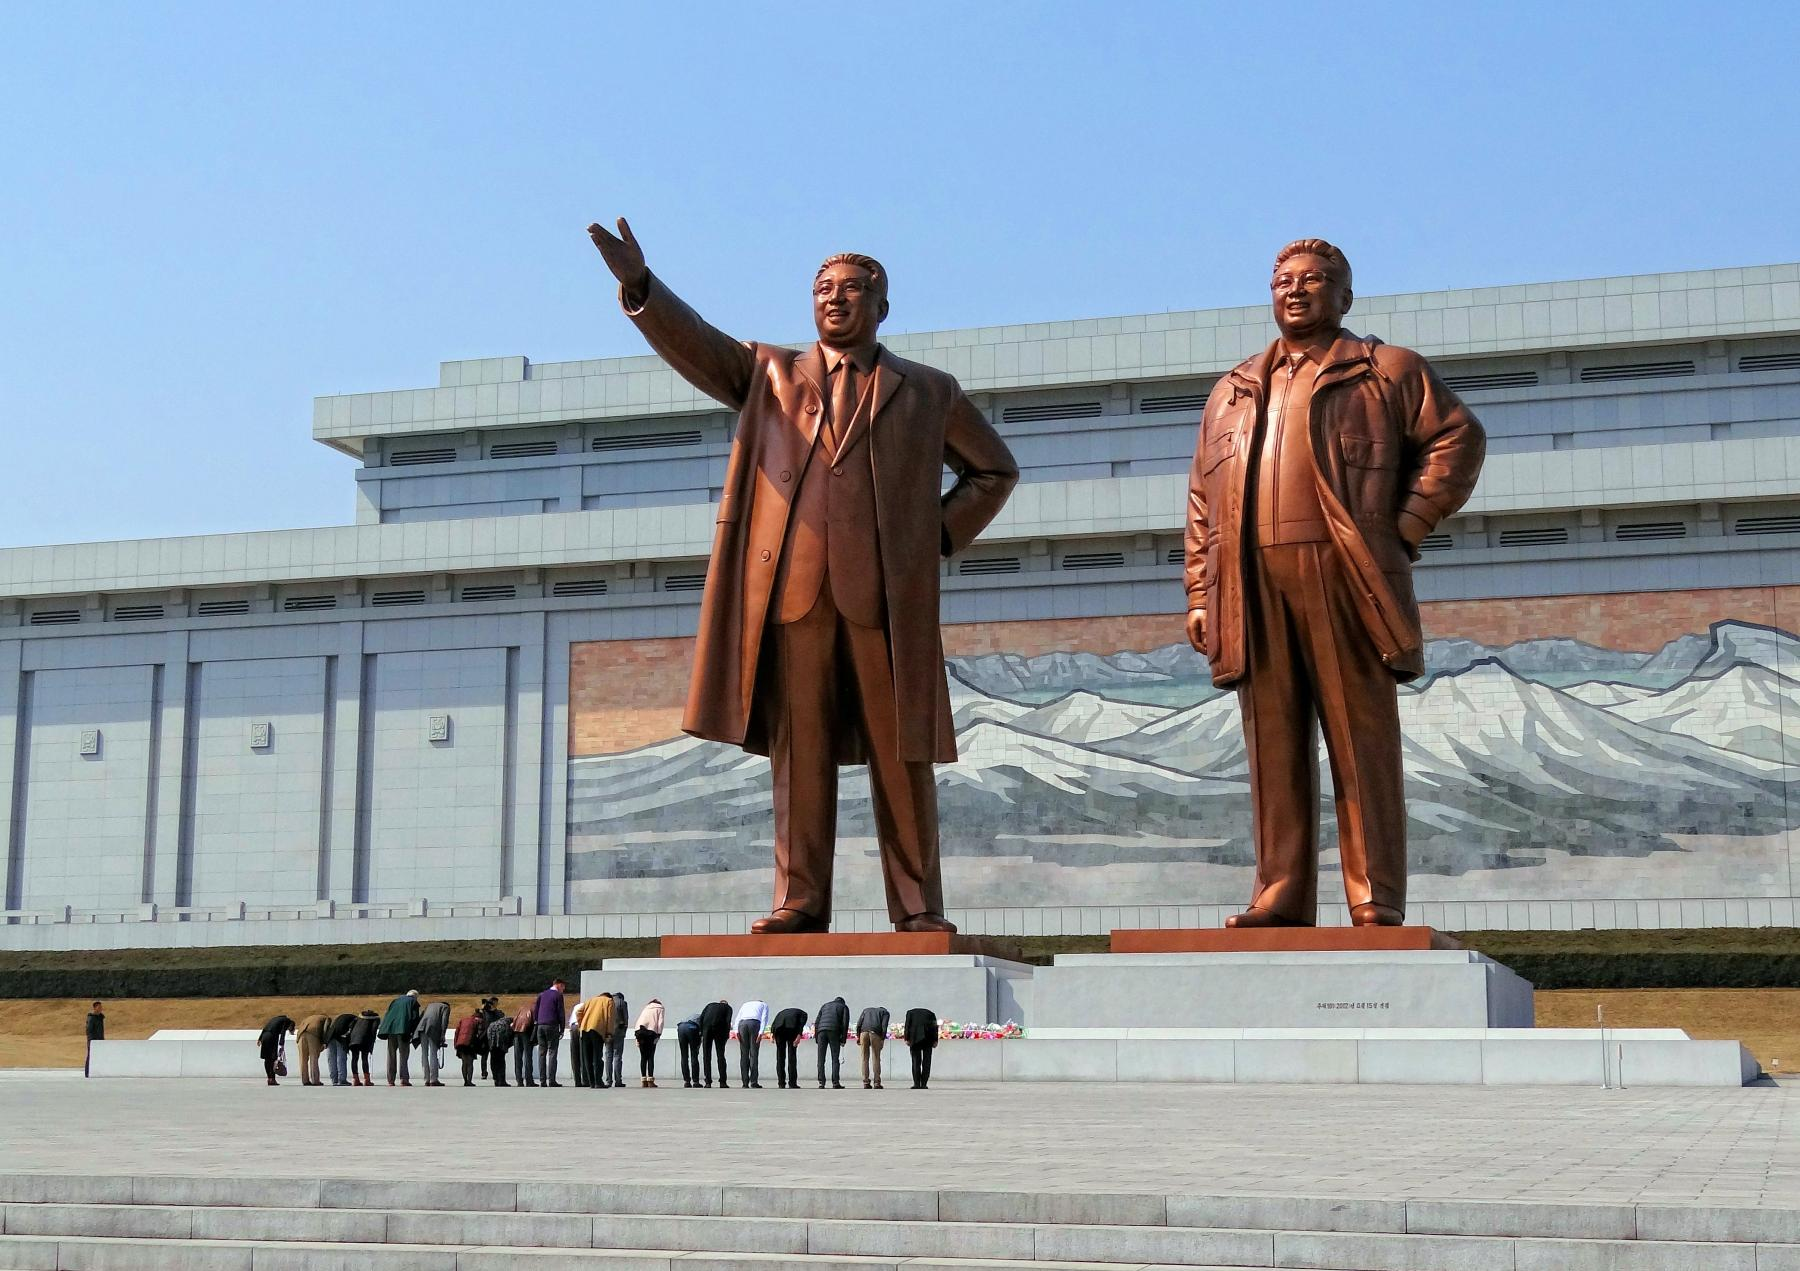 Let's celebrate the world's most secretive country's national day - North Korea starting at North Korea